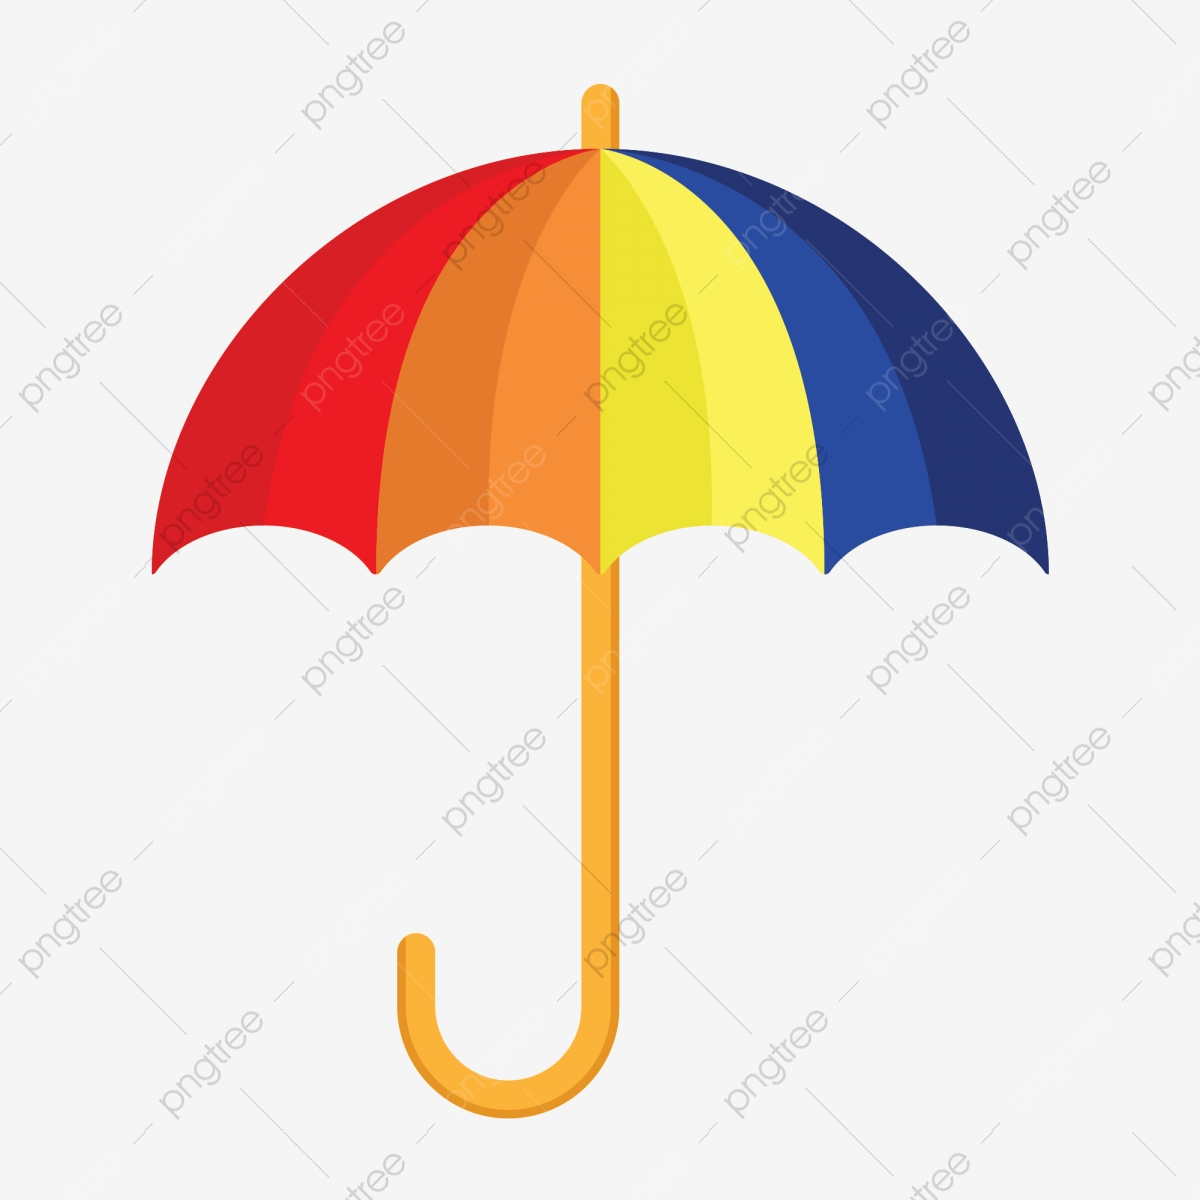 Clipart umbrella simple umbrella. Color cartoon gradient png